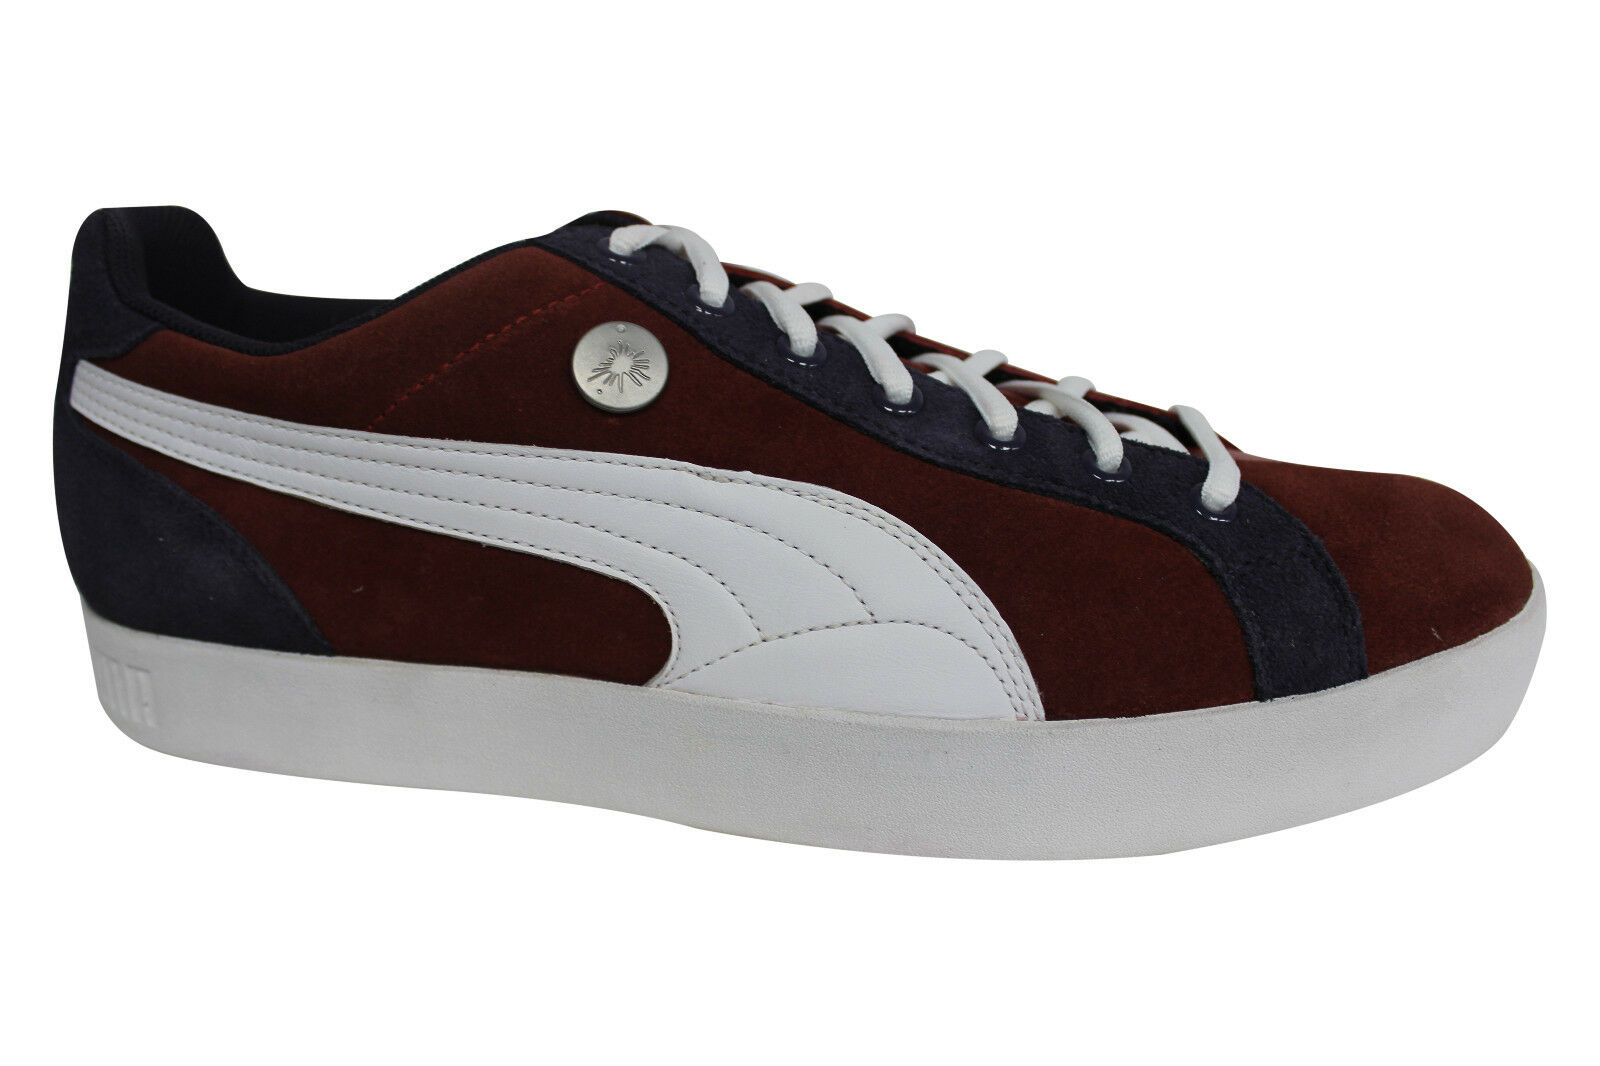 Puma Mihara Yasuhiro MY 33 Brown Lace Up Mens Trainers 346358 02 U26 best-selling model of the brand